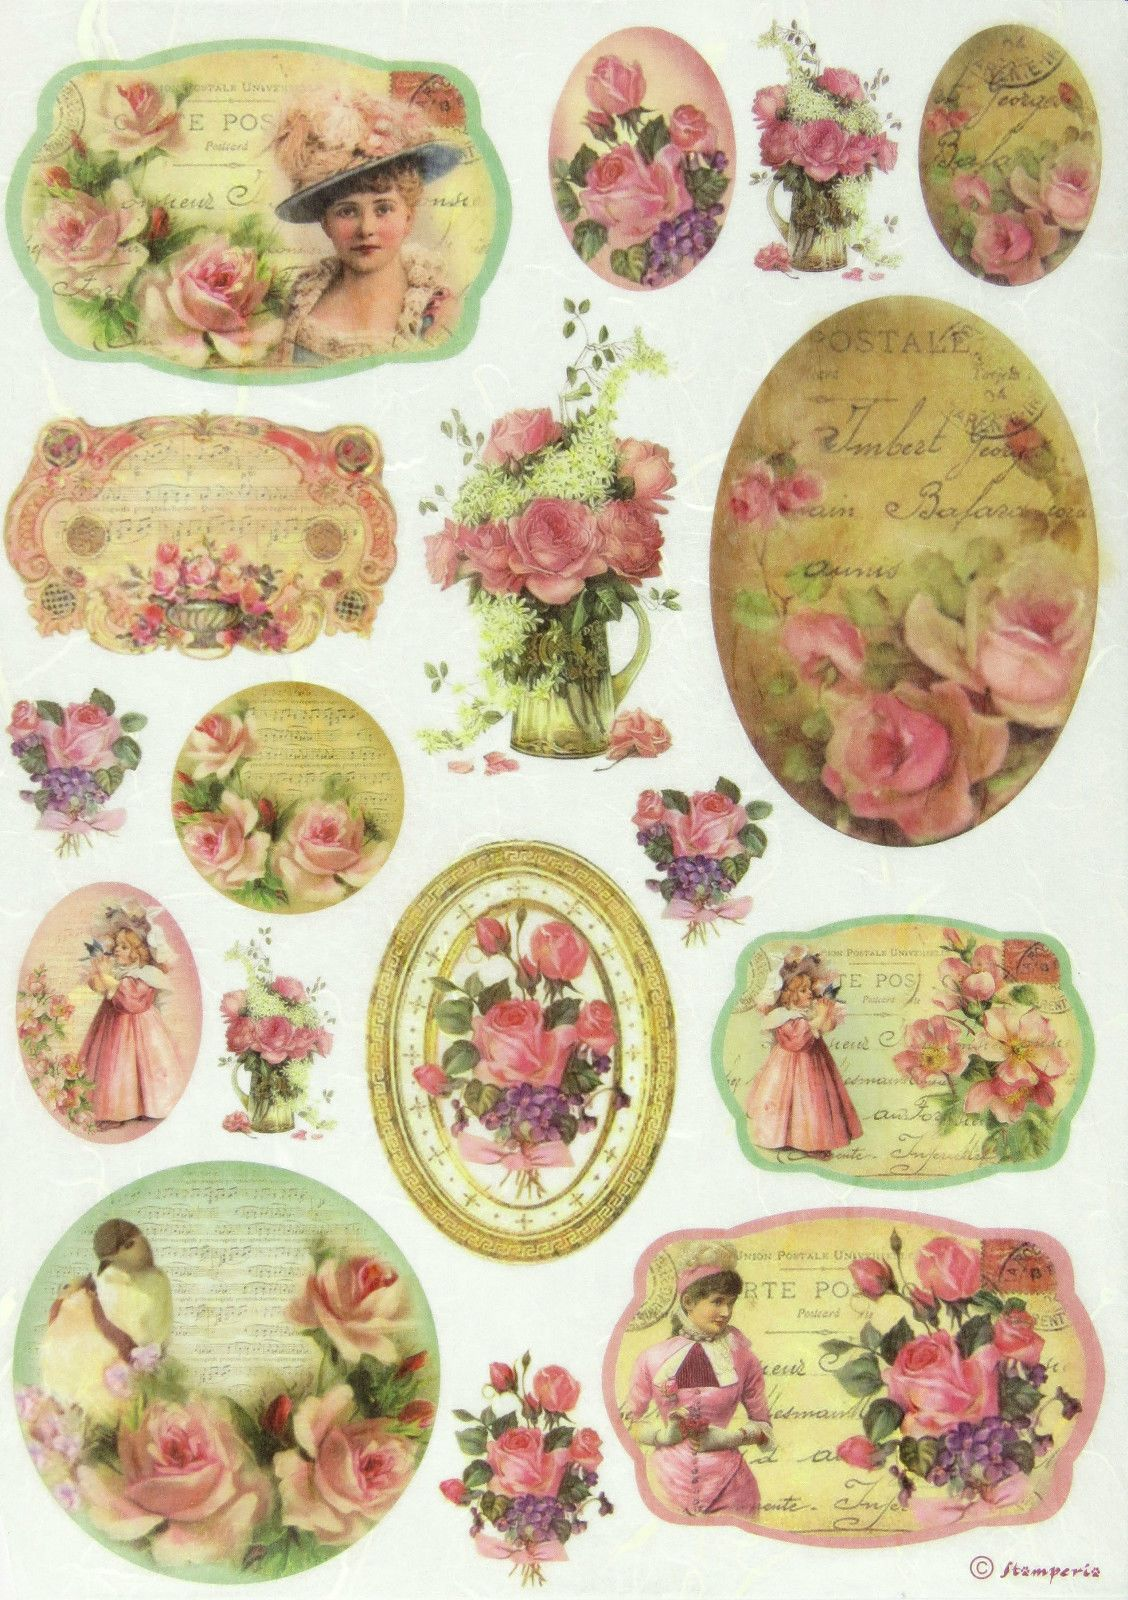 Ricepaper / Decoupage paper, Scrapbooking Sheets Tags with Vintage Girls in Crafts, Cardmaking & Scrapbooking, Decoupage | eBay